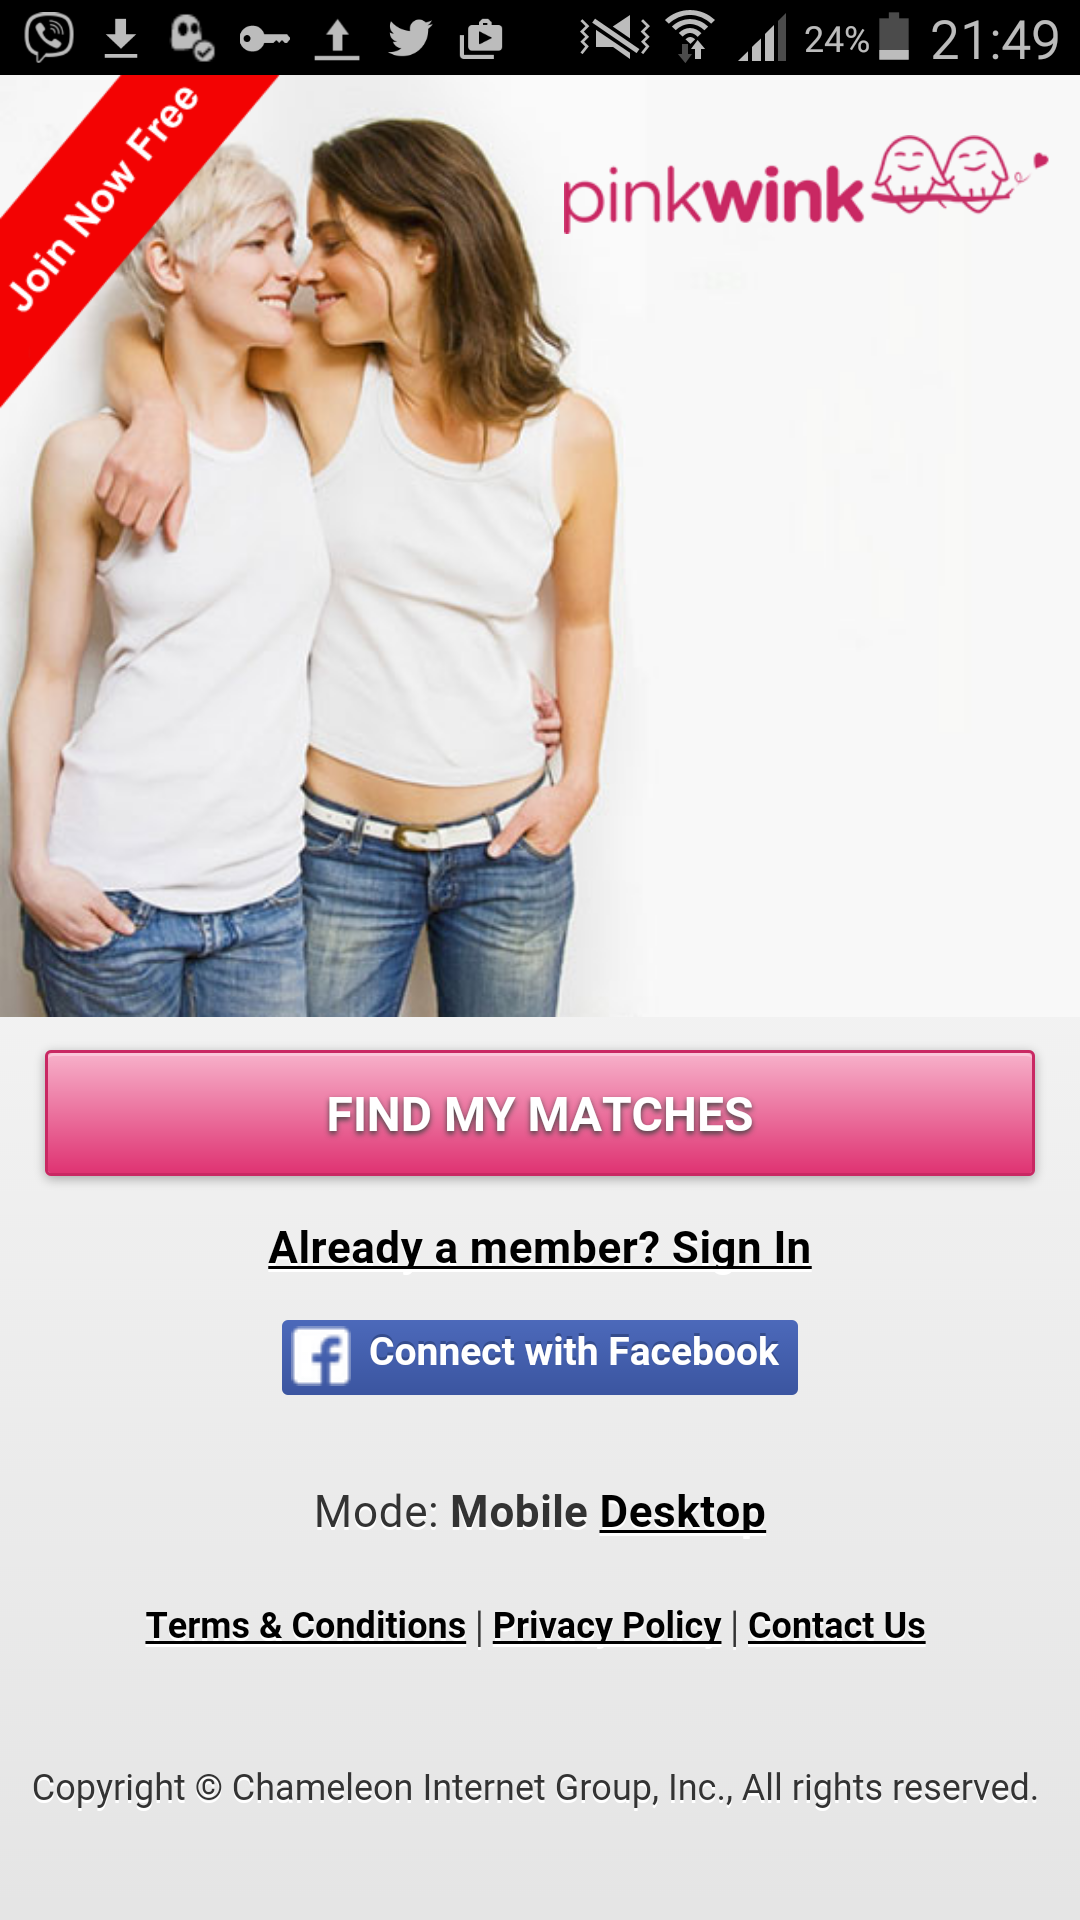 totz lesbian dating site Any good teen lesbian dating sites soo im 15 and lesbian im looking for a site to hopefully meet someone any suggestions im looking for a site to hopefully meet someone any suggestions.